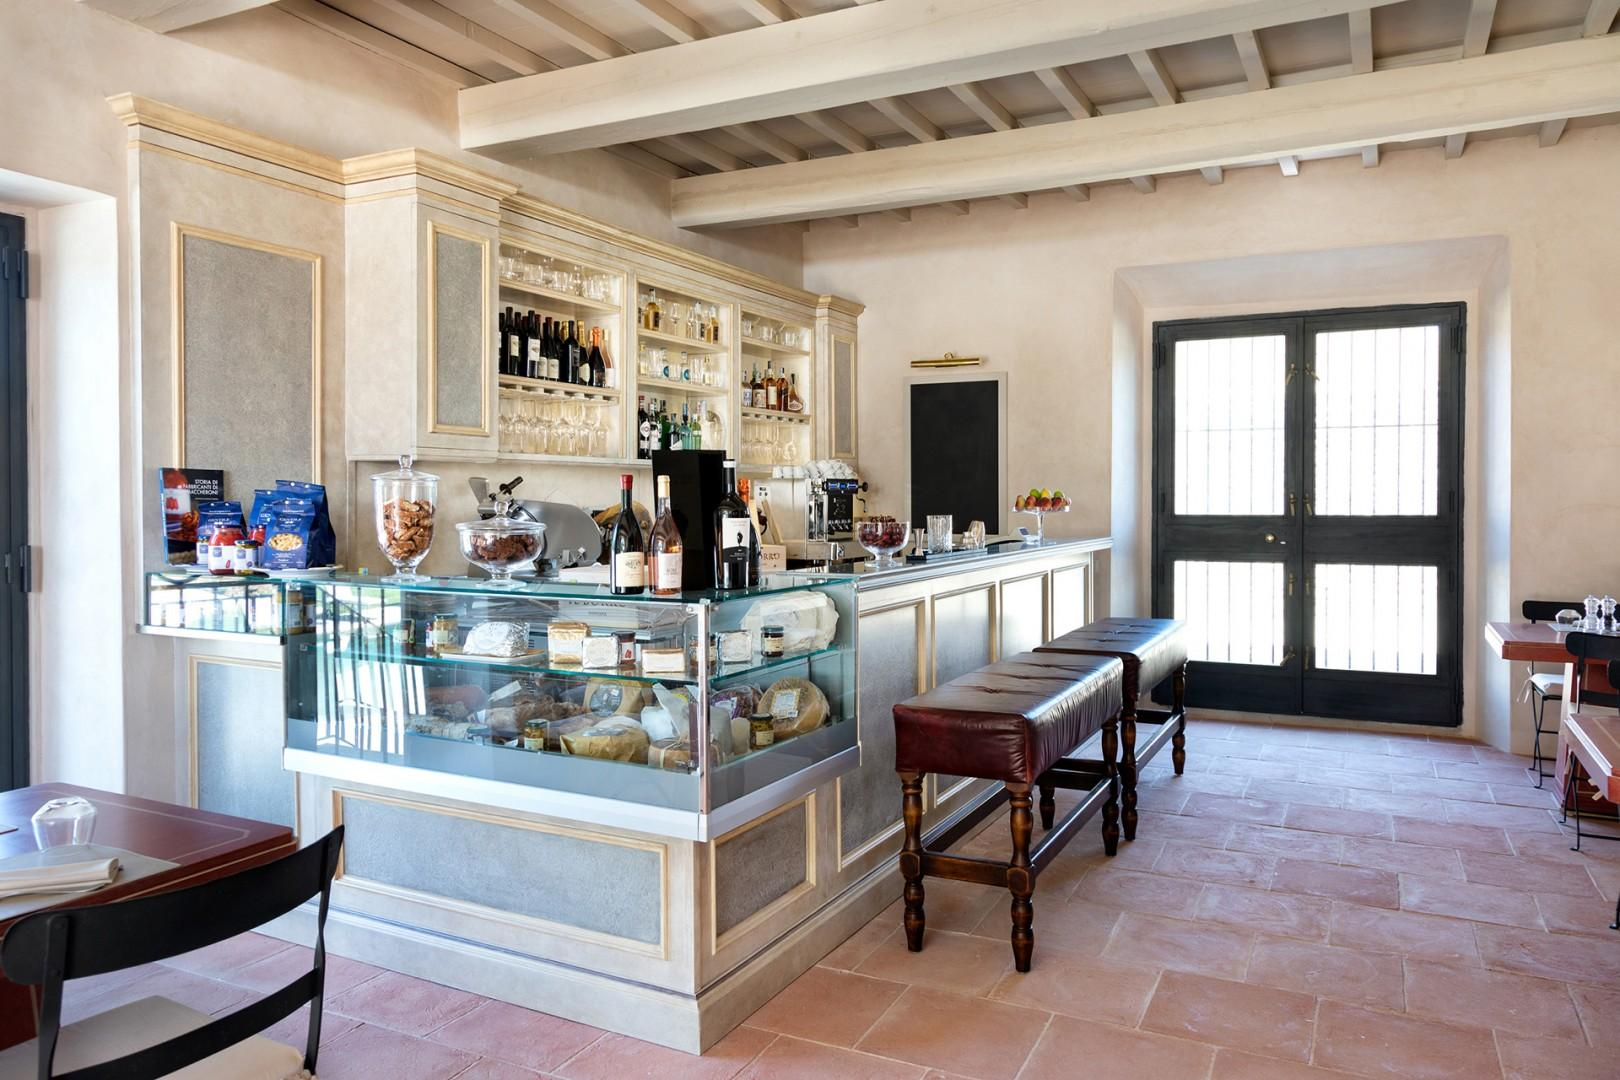 The on-site bistro serves delicious Tuscan specialties in a casual atmosphere. The shop offers local